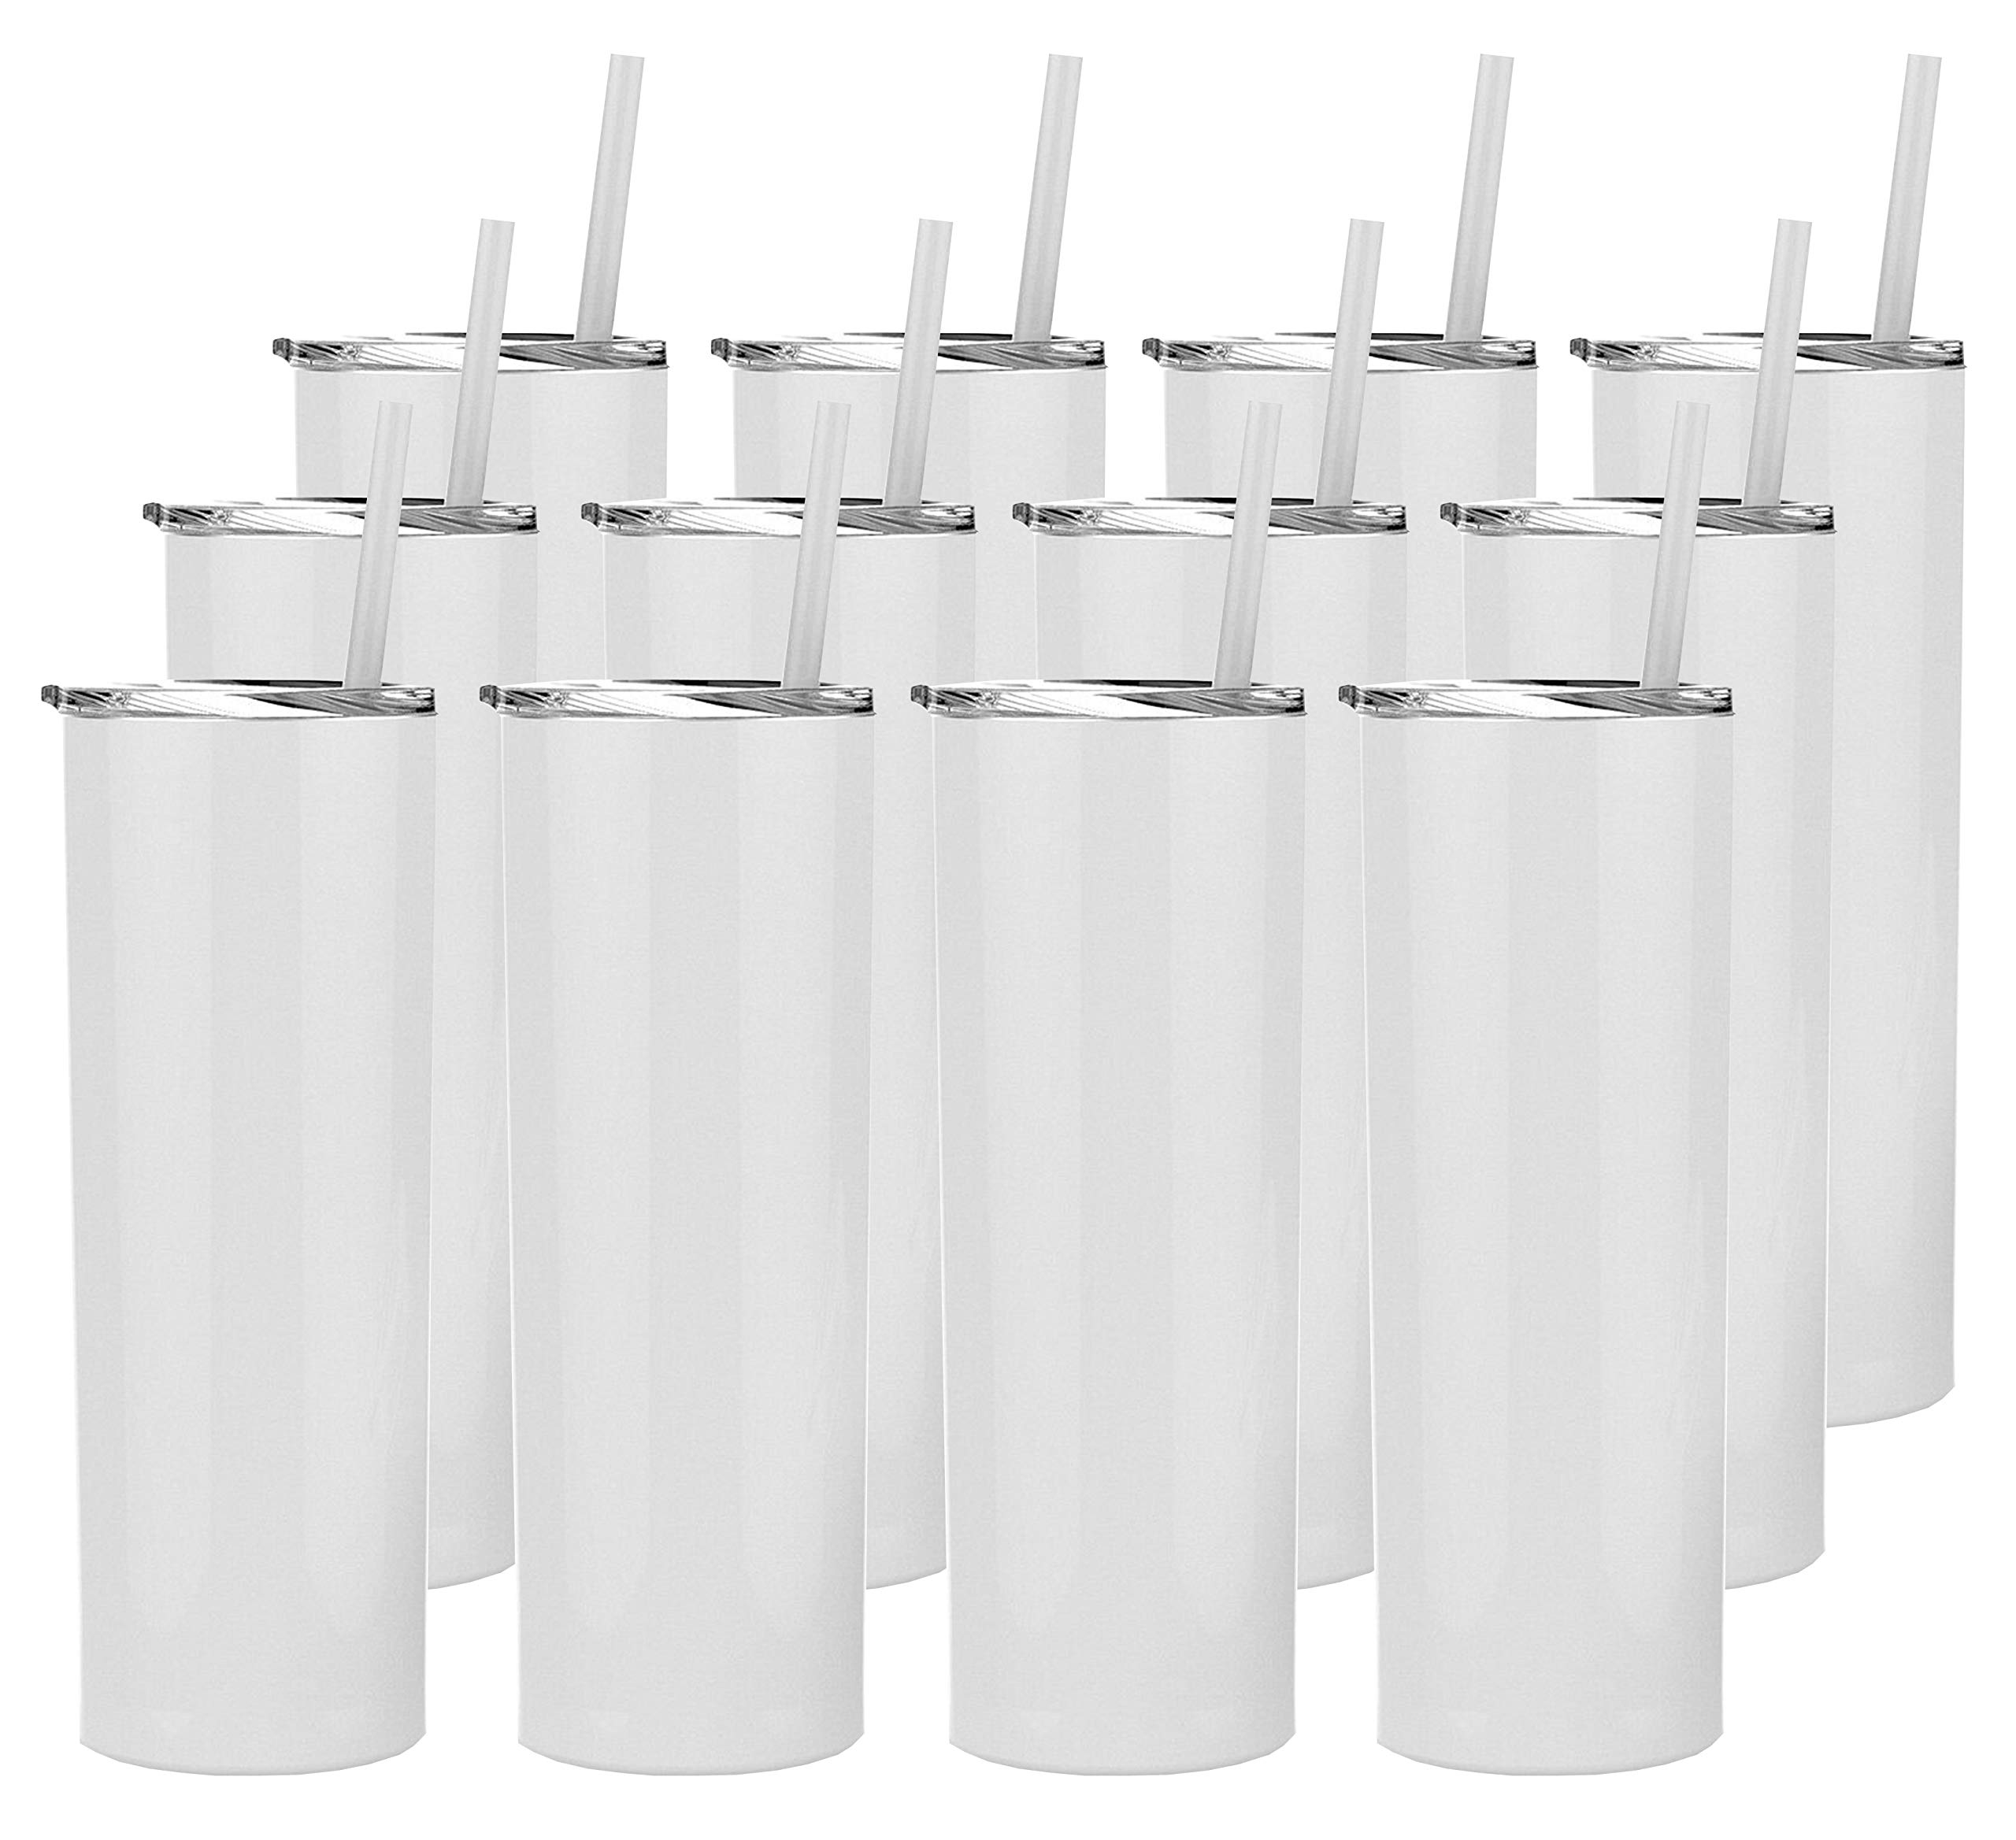 Stellar 20 oz. Skinny Steel 12 Pack Double Wall Stainless Tumbler (White) by Stellar